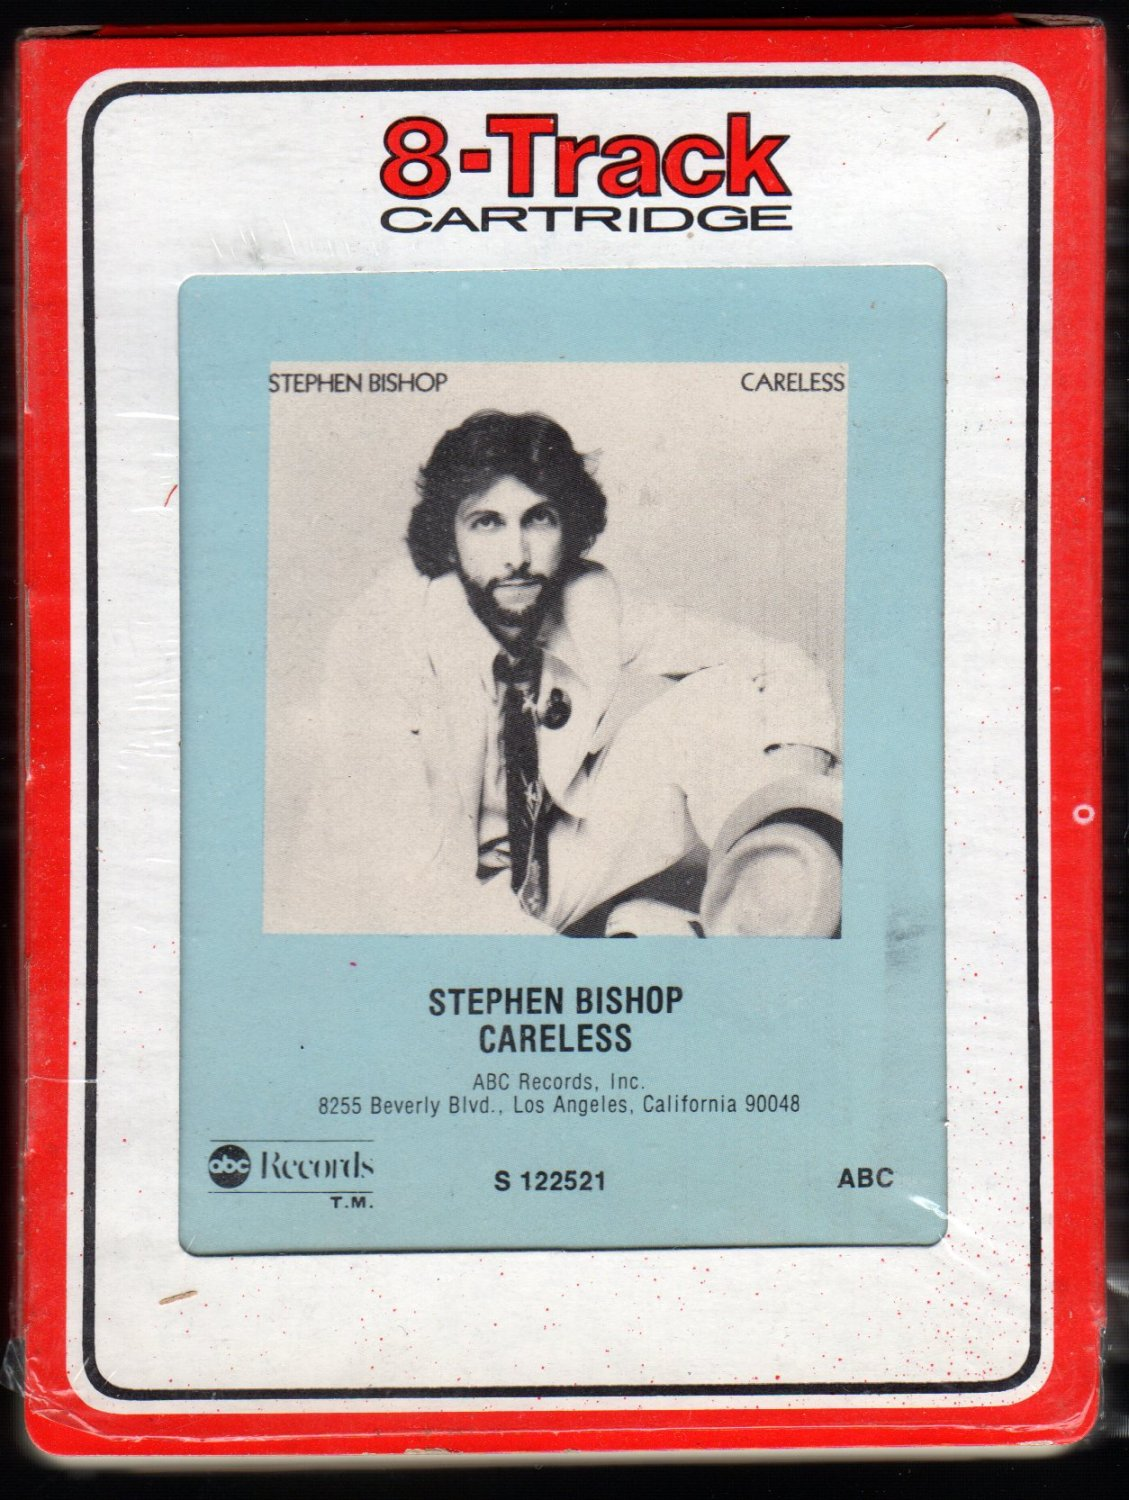 Stephen Bishop - Careless 1976 Debut RCA ABC A45 8-TRACK TAPE